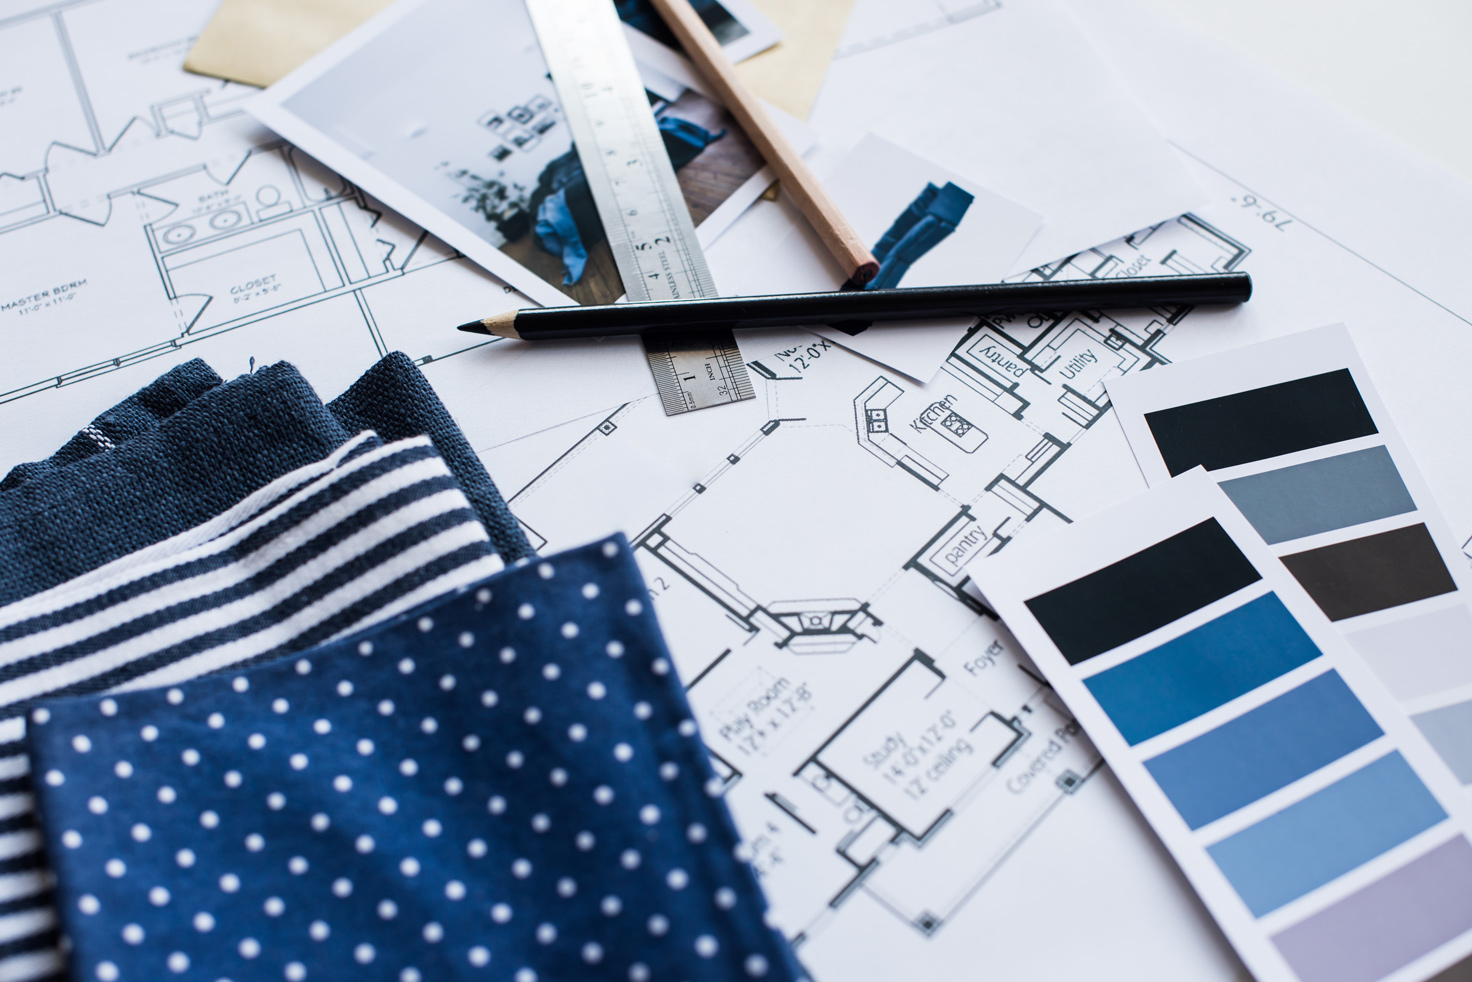 Design Consultation Renovation Plans for color & fabric options